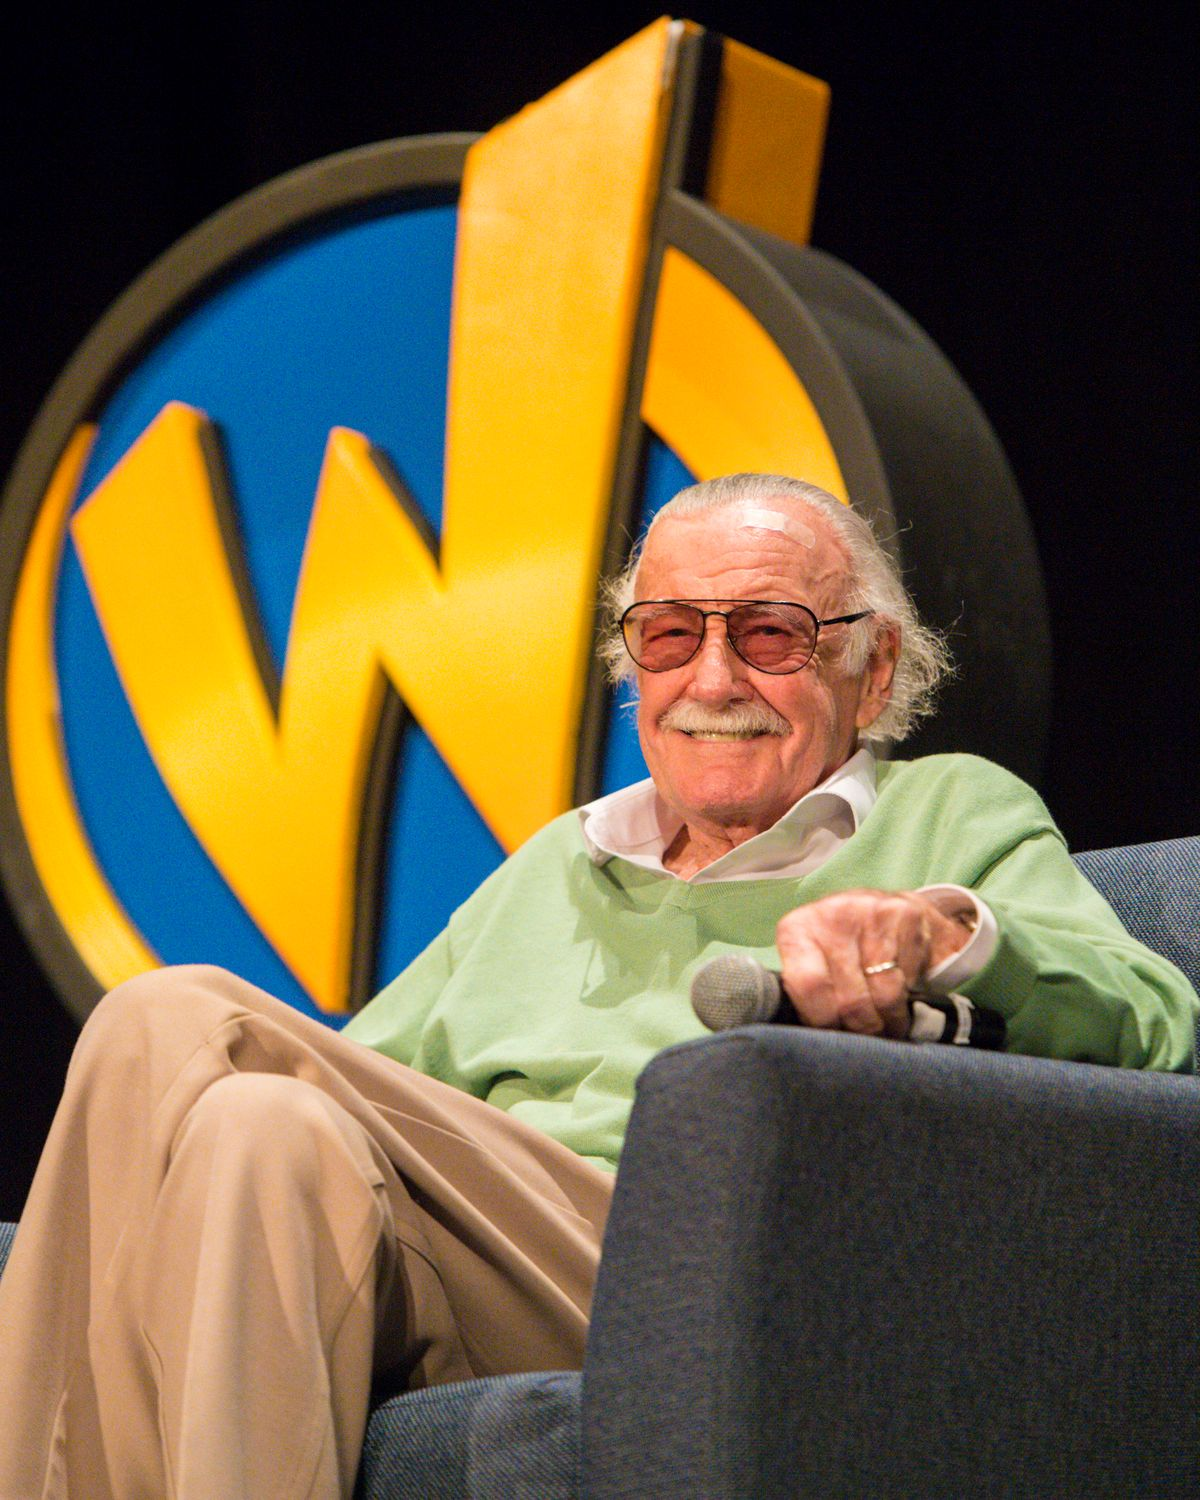 Stan Lee during a Q&A at Wizard World Comic Con at Ernest N. Morial Convention Center on January 6, 2018 | Photo: Getty Images